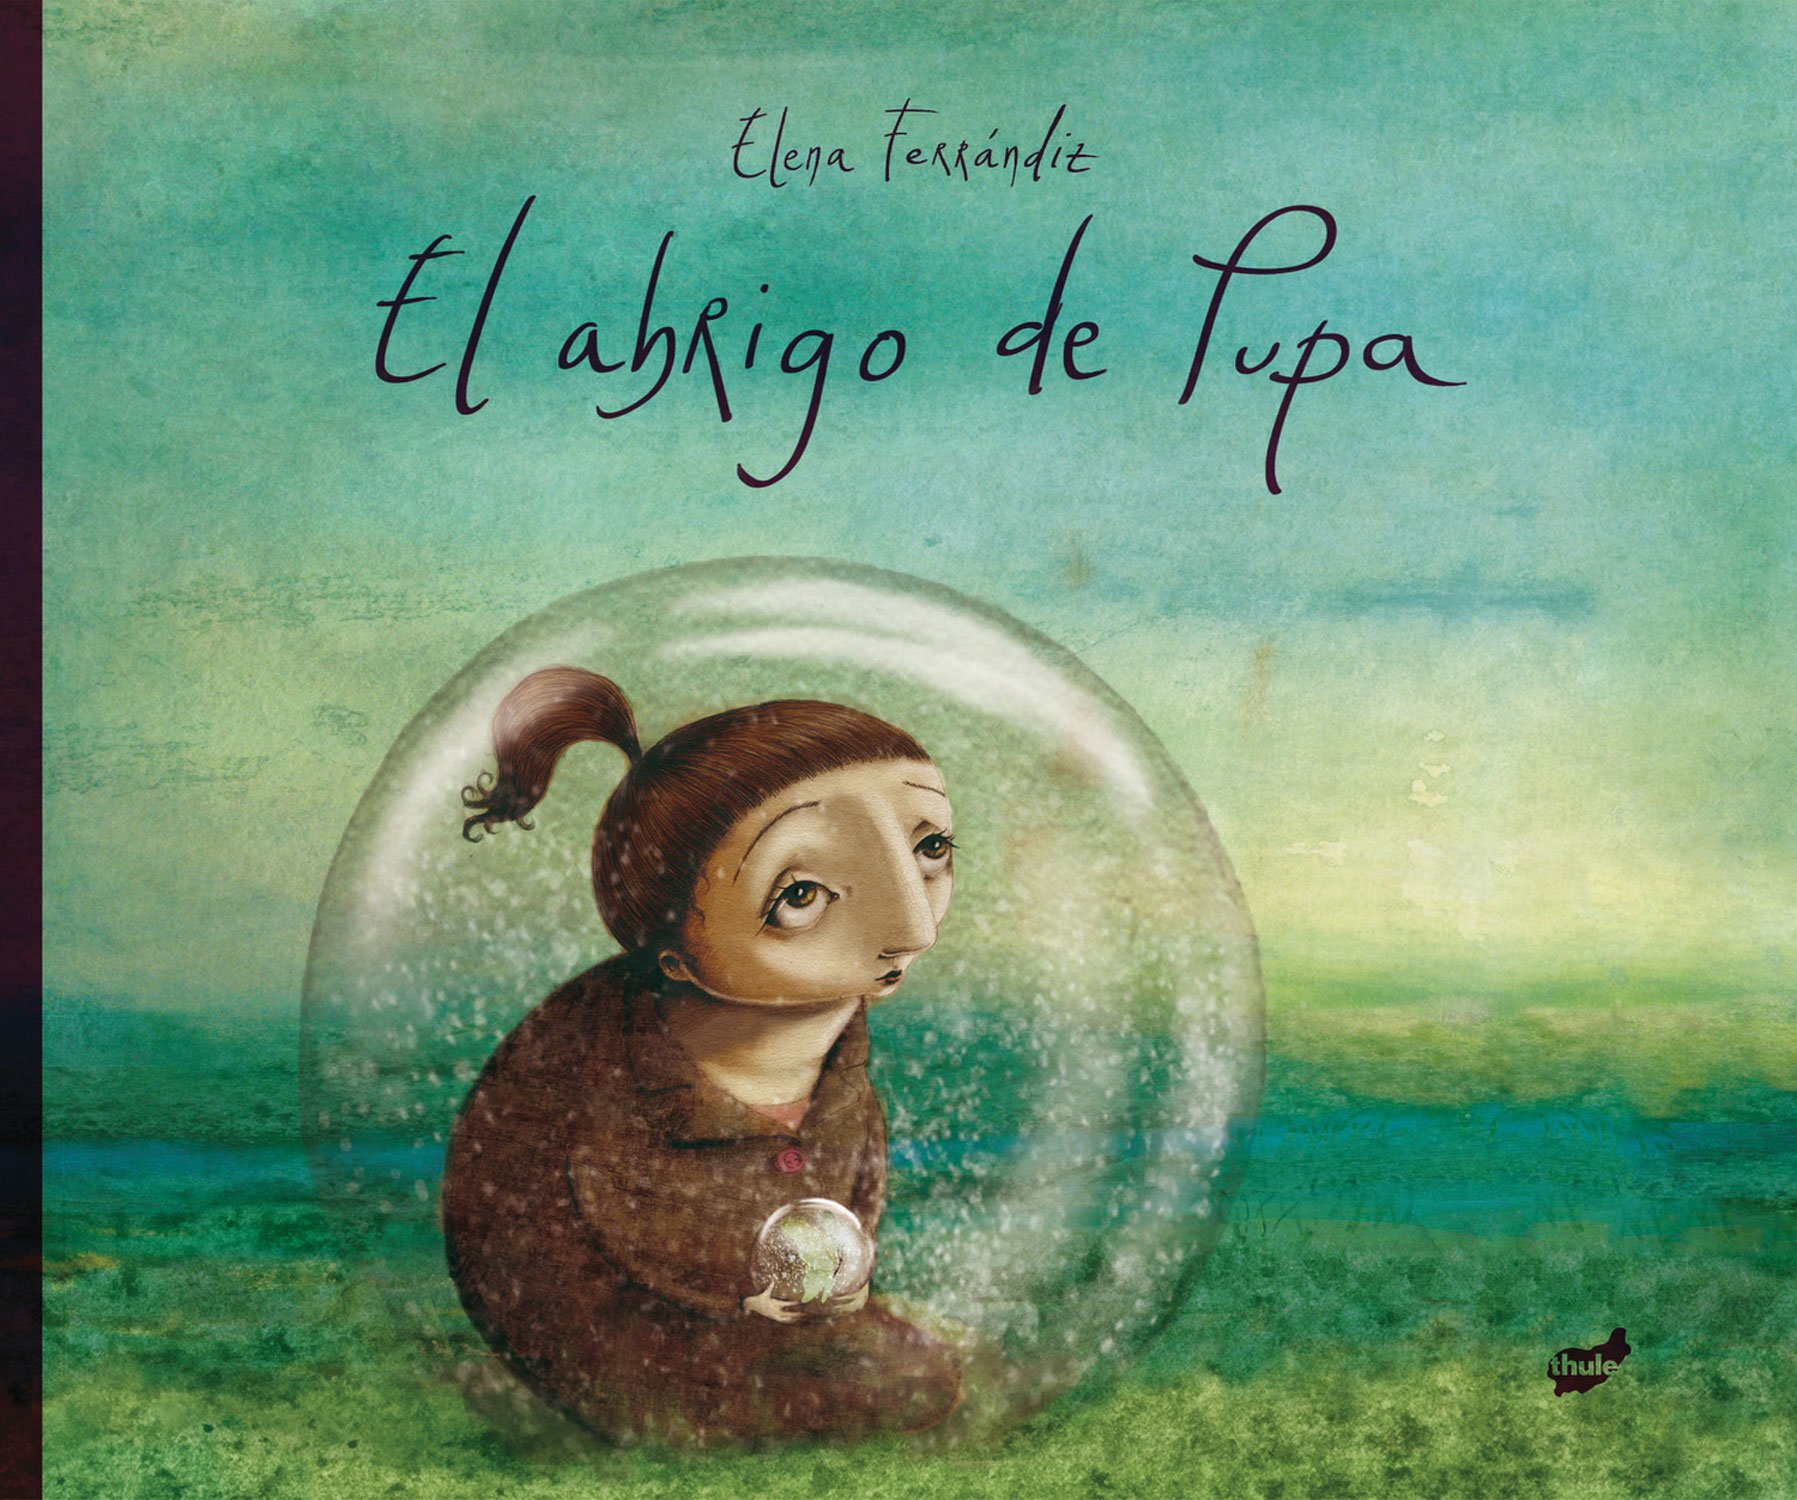 El abrigo de Pupa (Spanish Edition): Elena Ferrándiz: 9788492595563: Amazon.com: Books